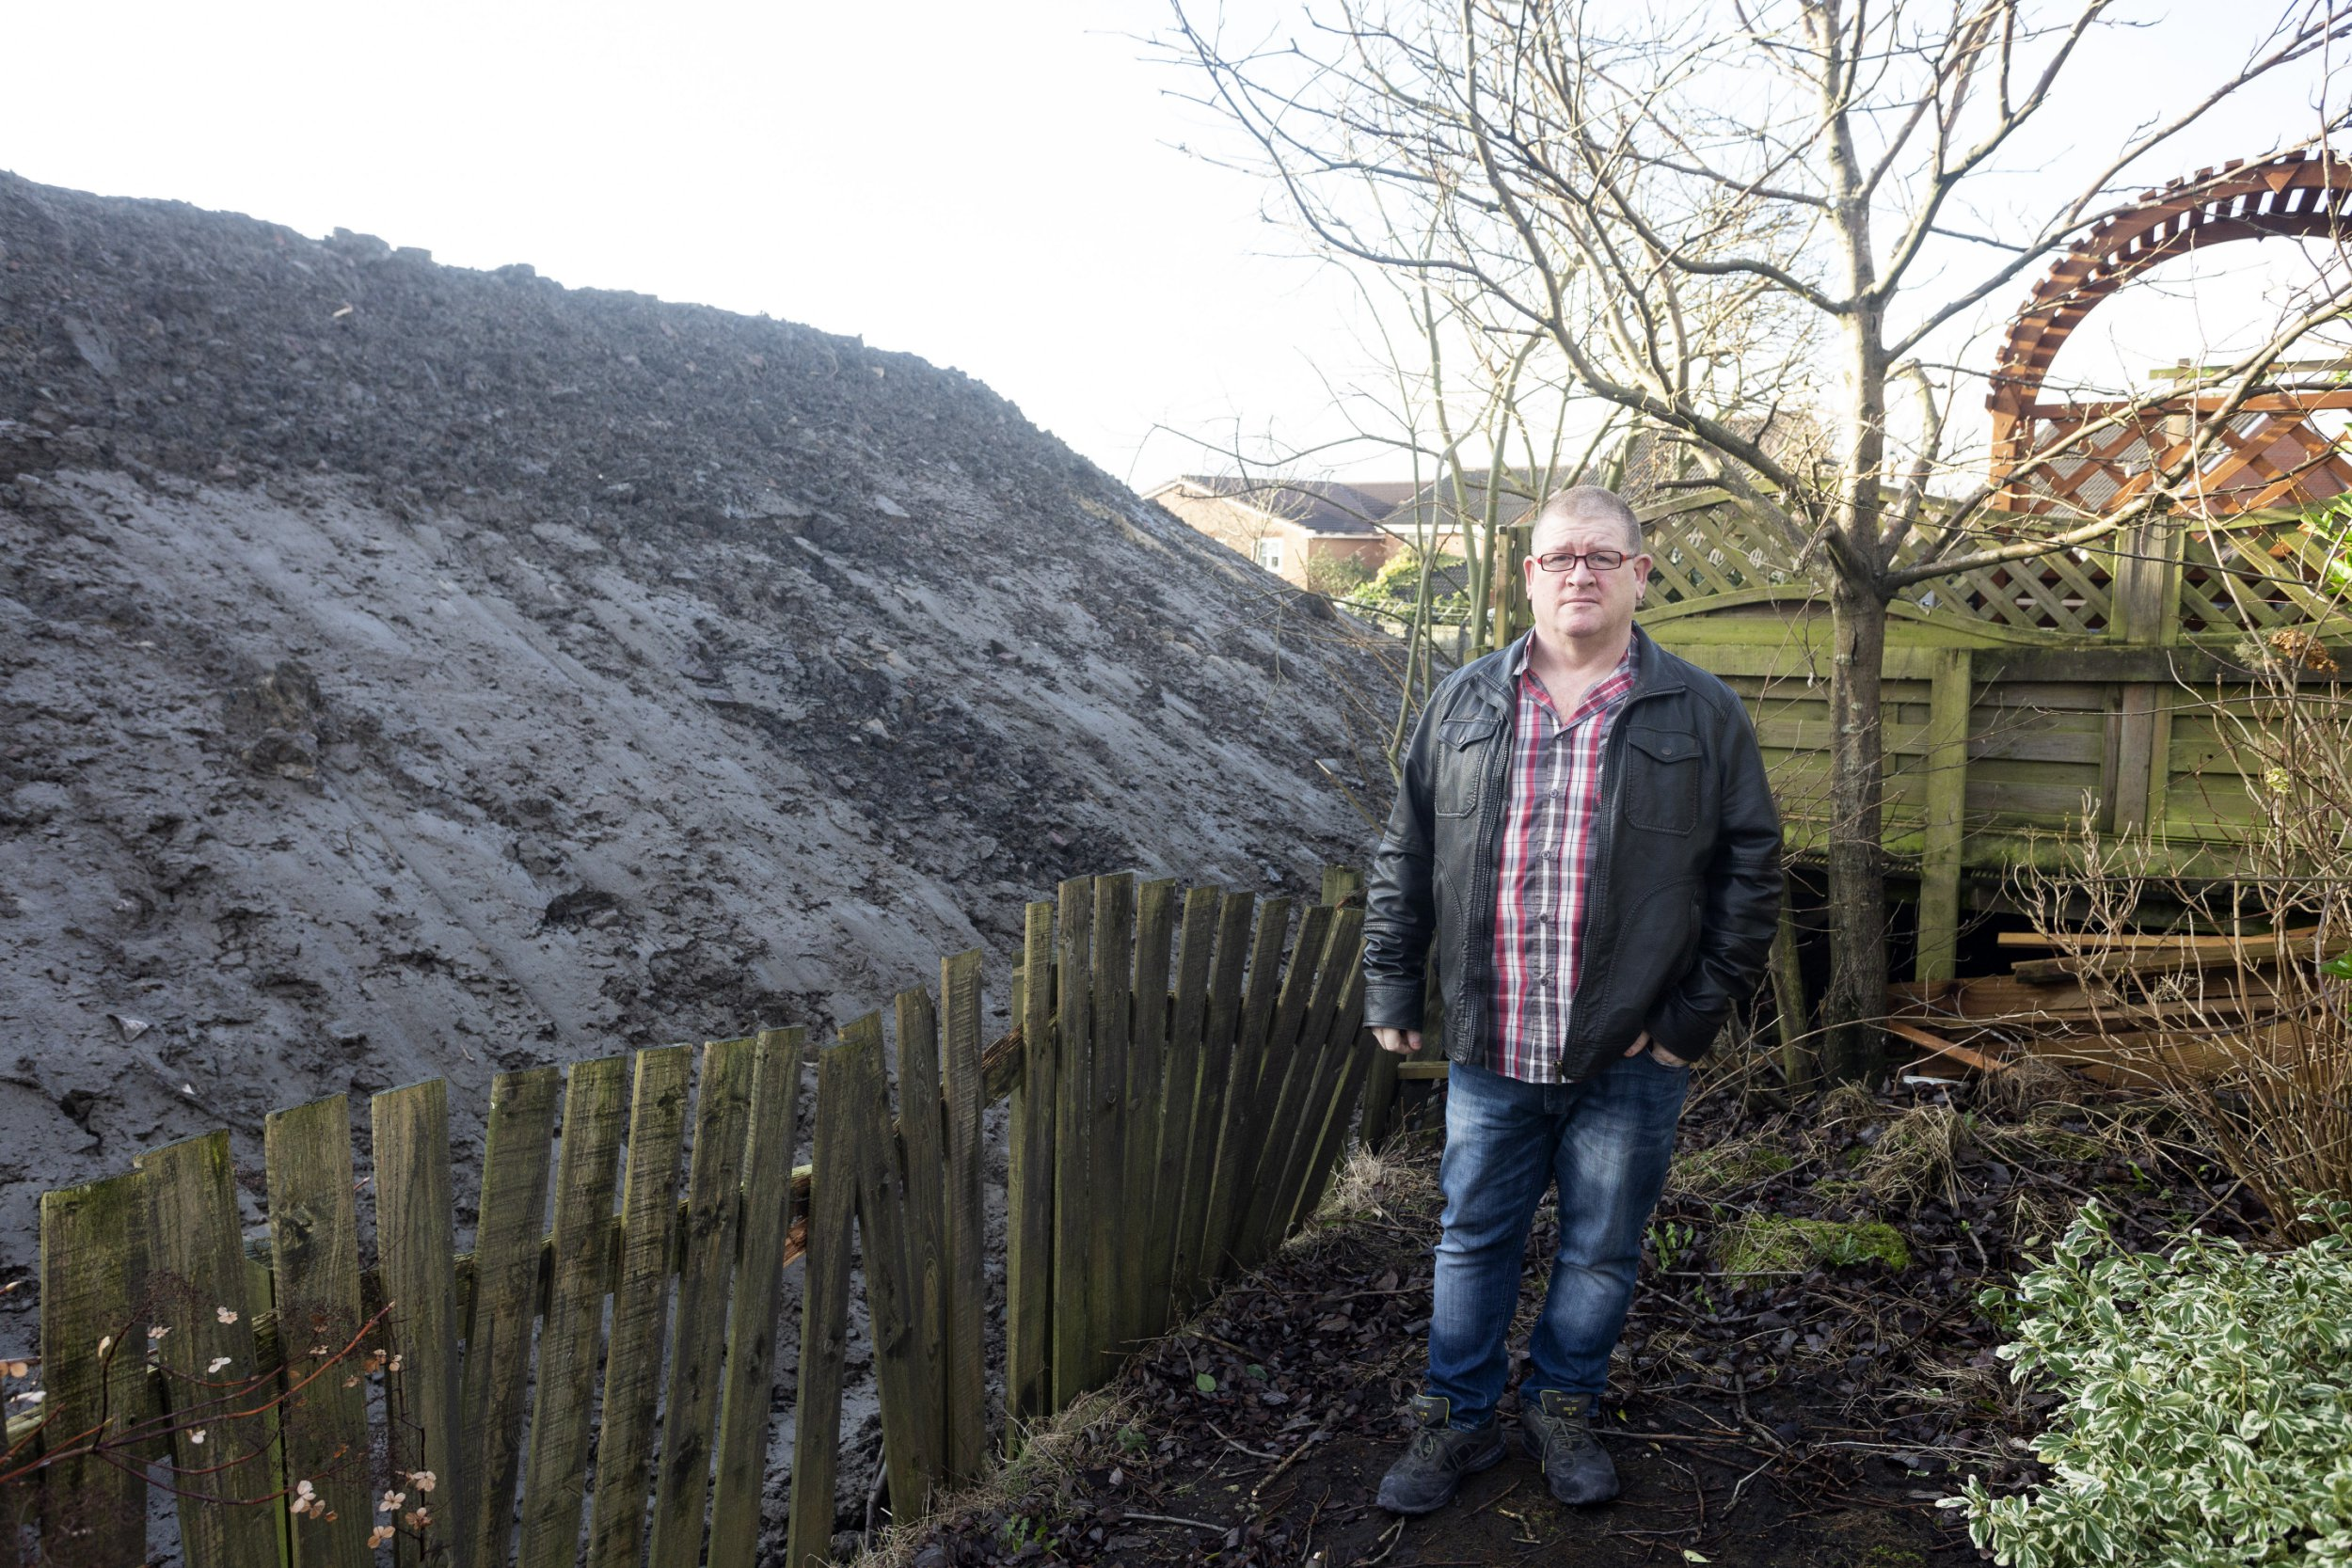 People compare huge mound dumped behind their homes to Donald Trump's wall